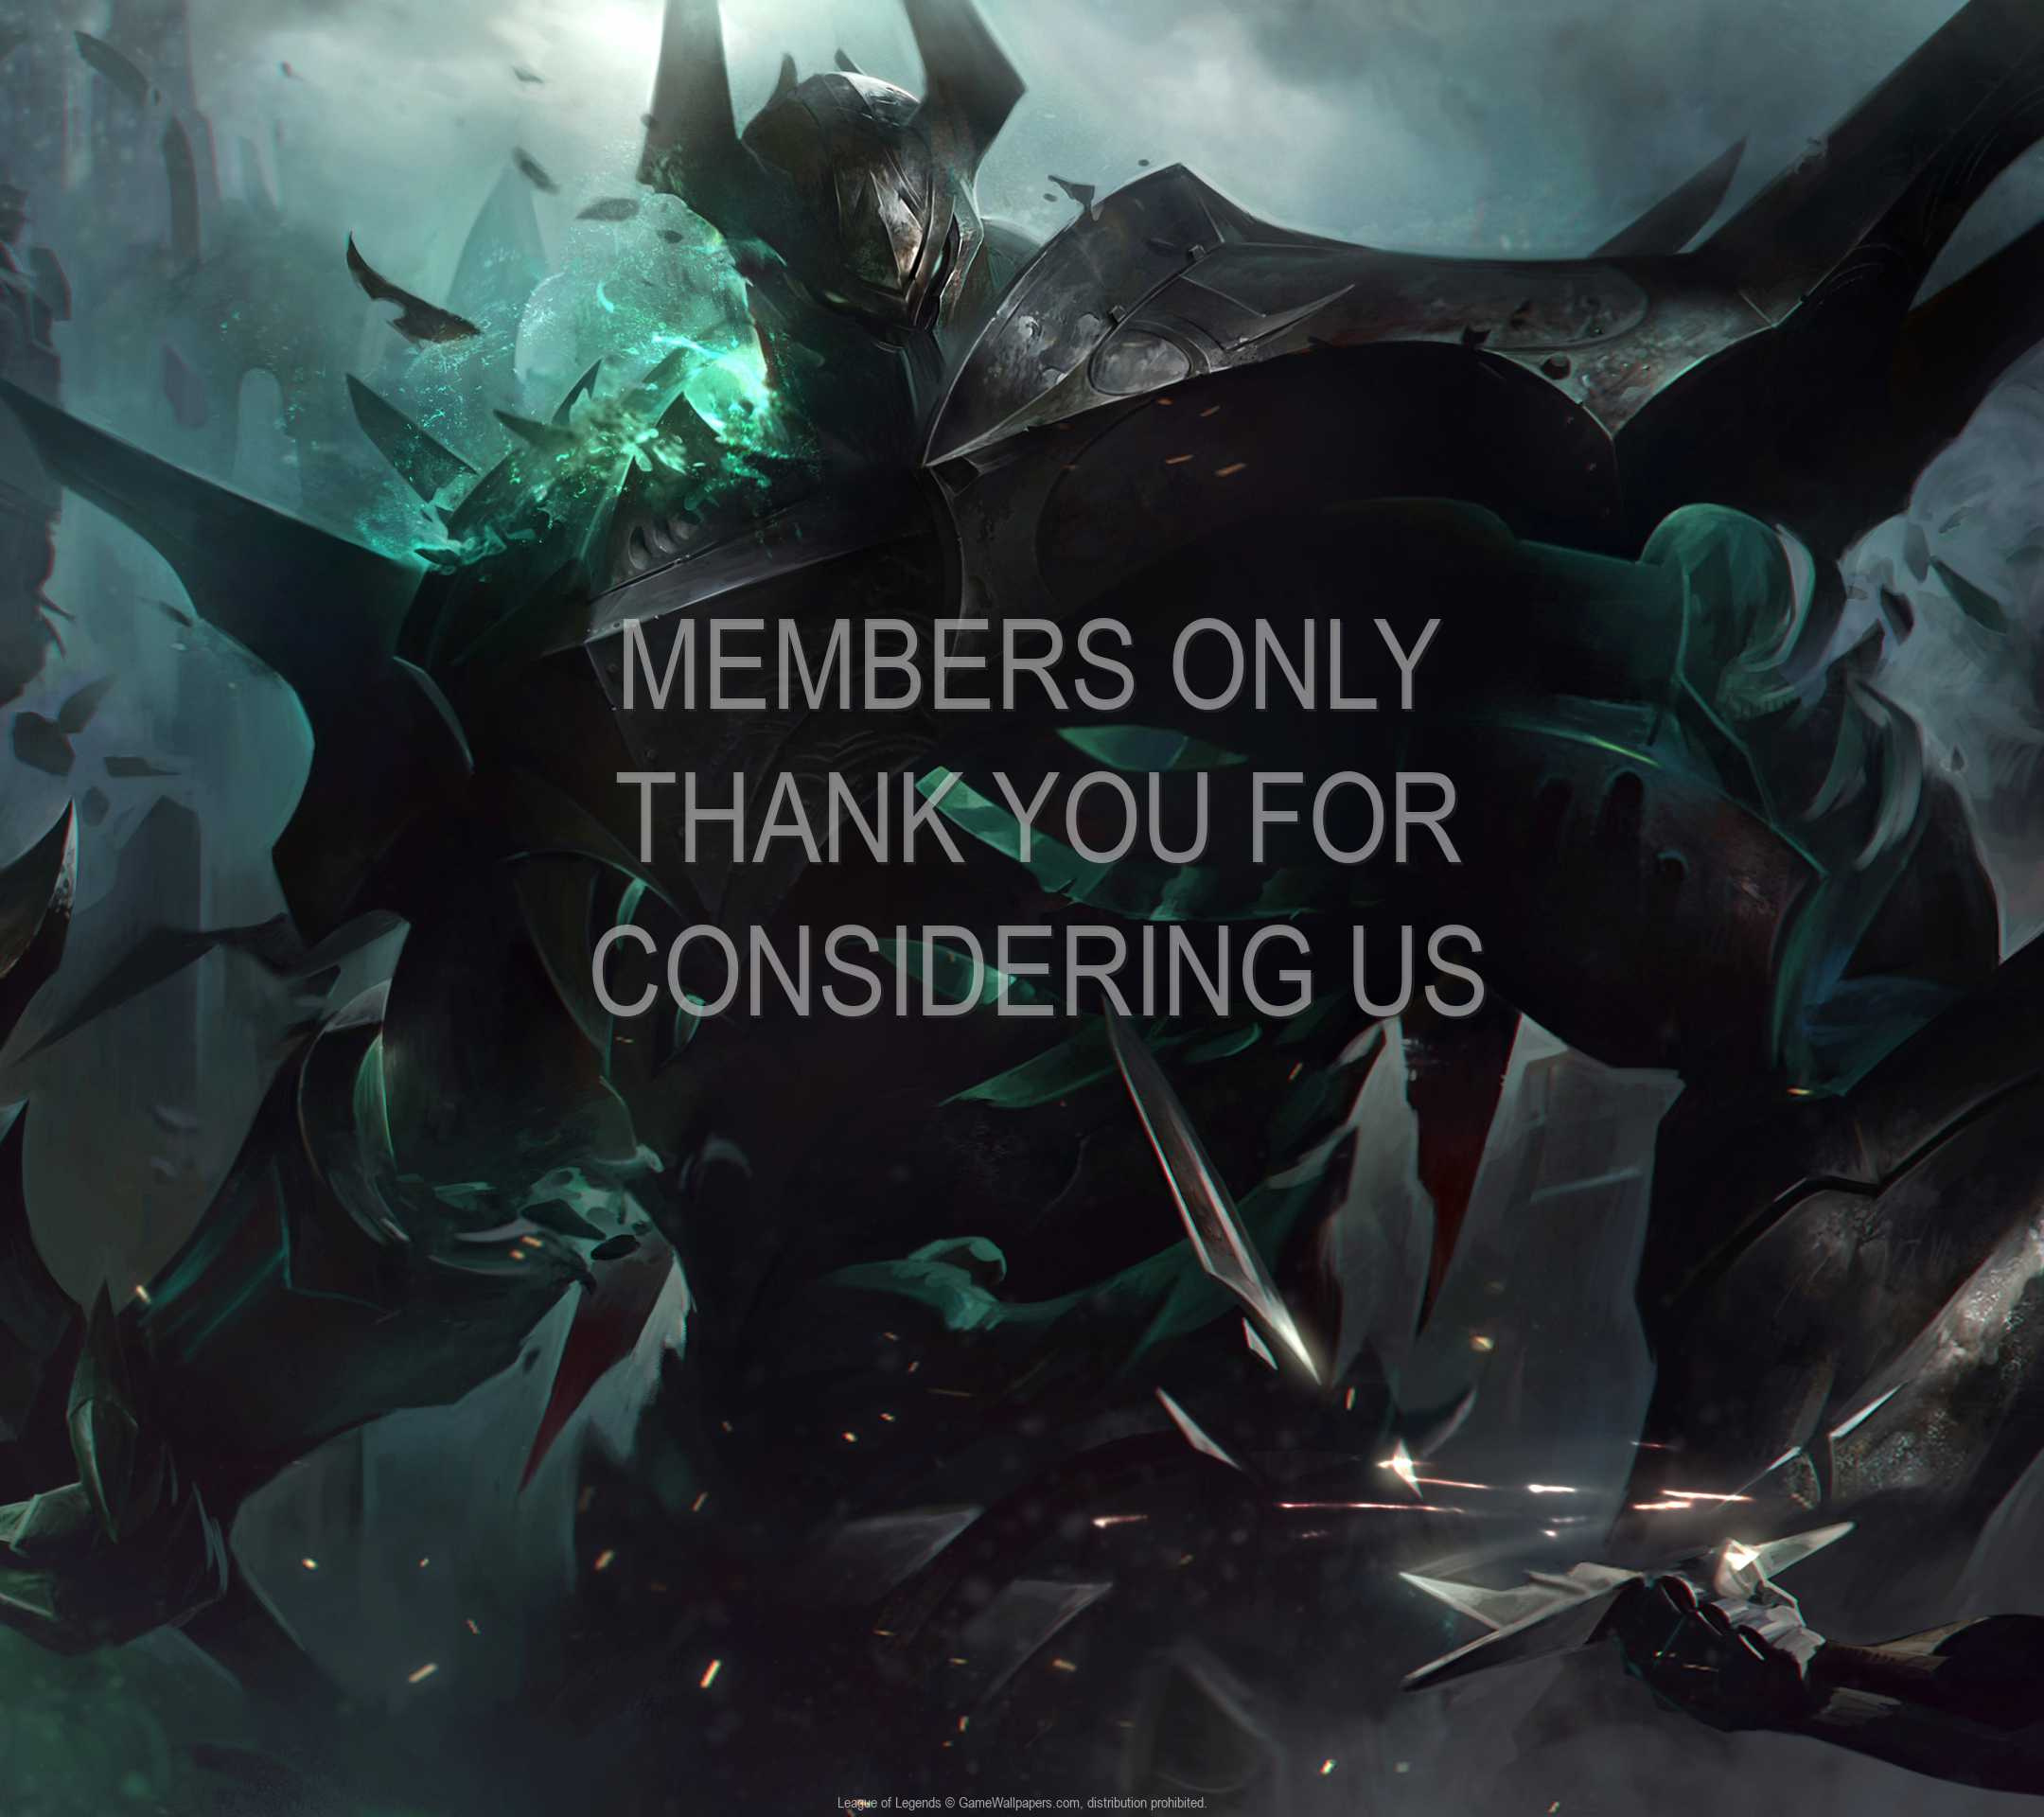 League of Legends 1080p Horizontal Mobile wallpaper or background 110